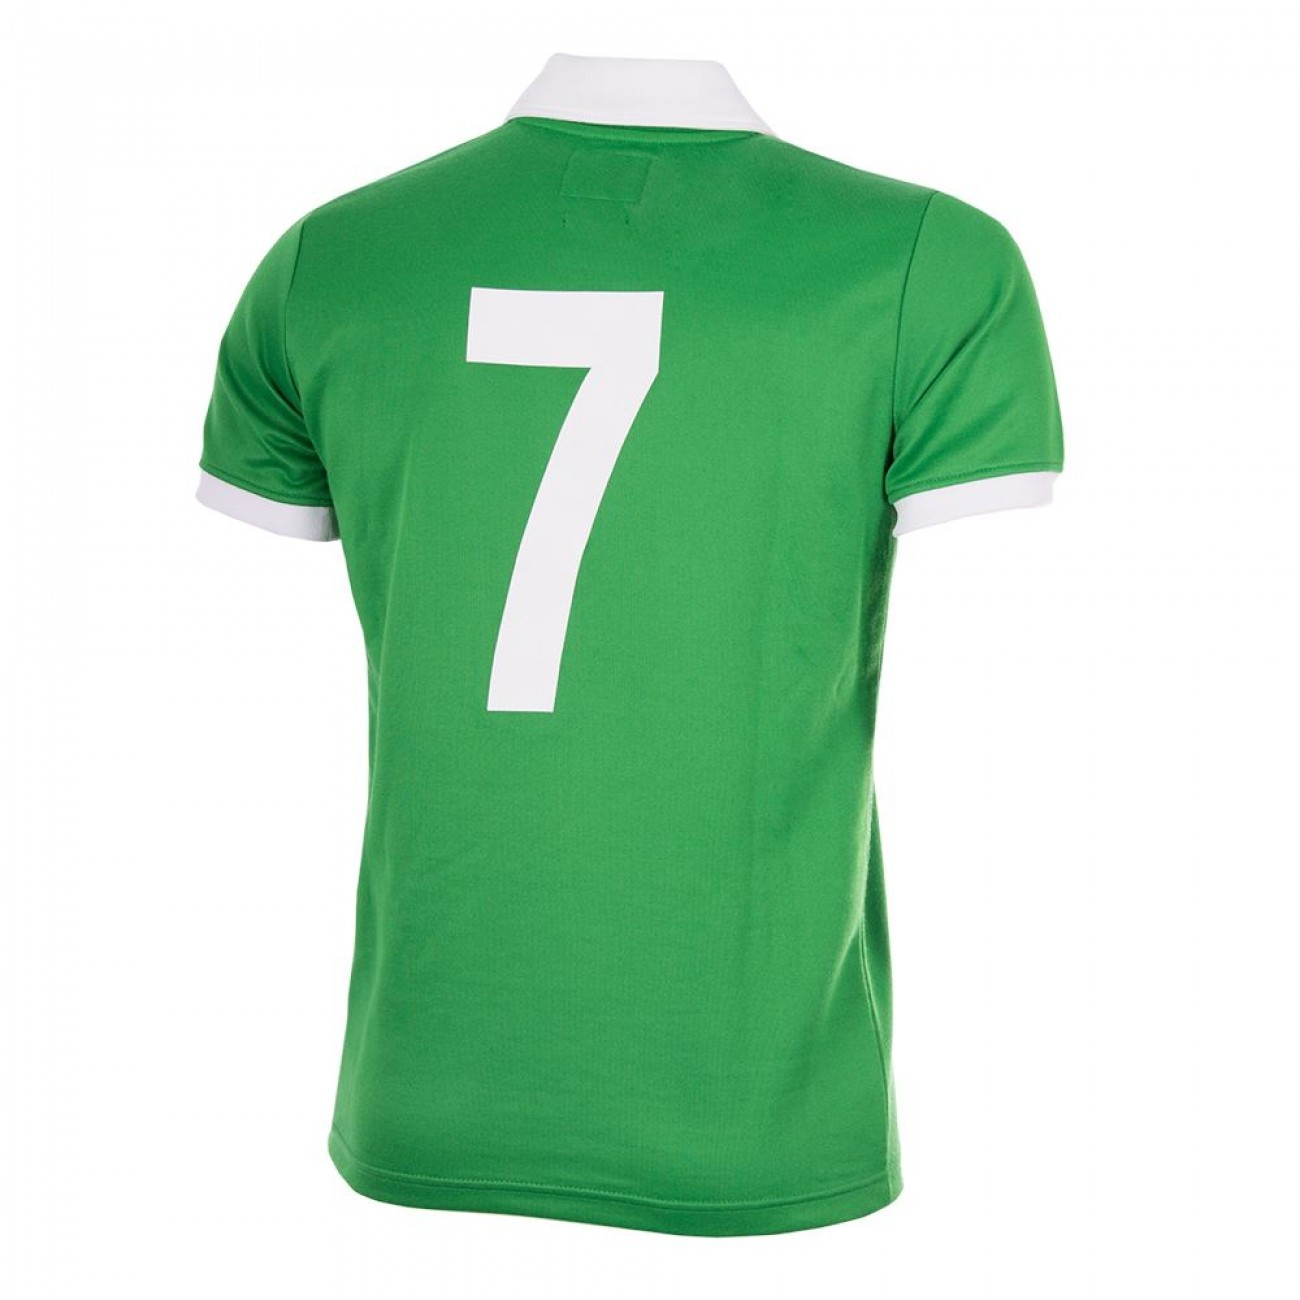 addb92430 Classic Football Shirts Collection